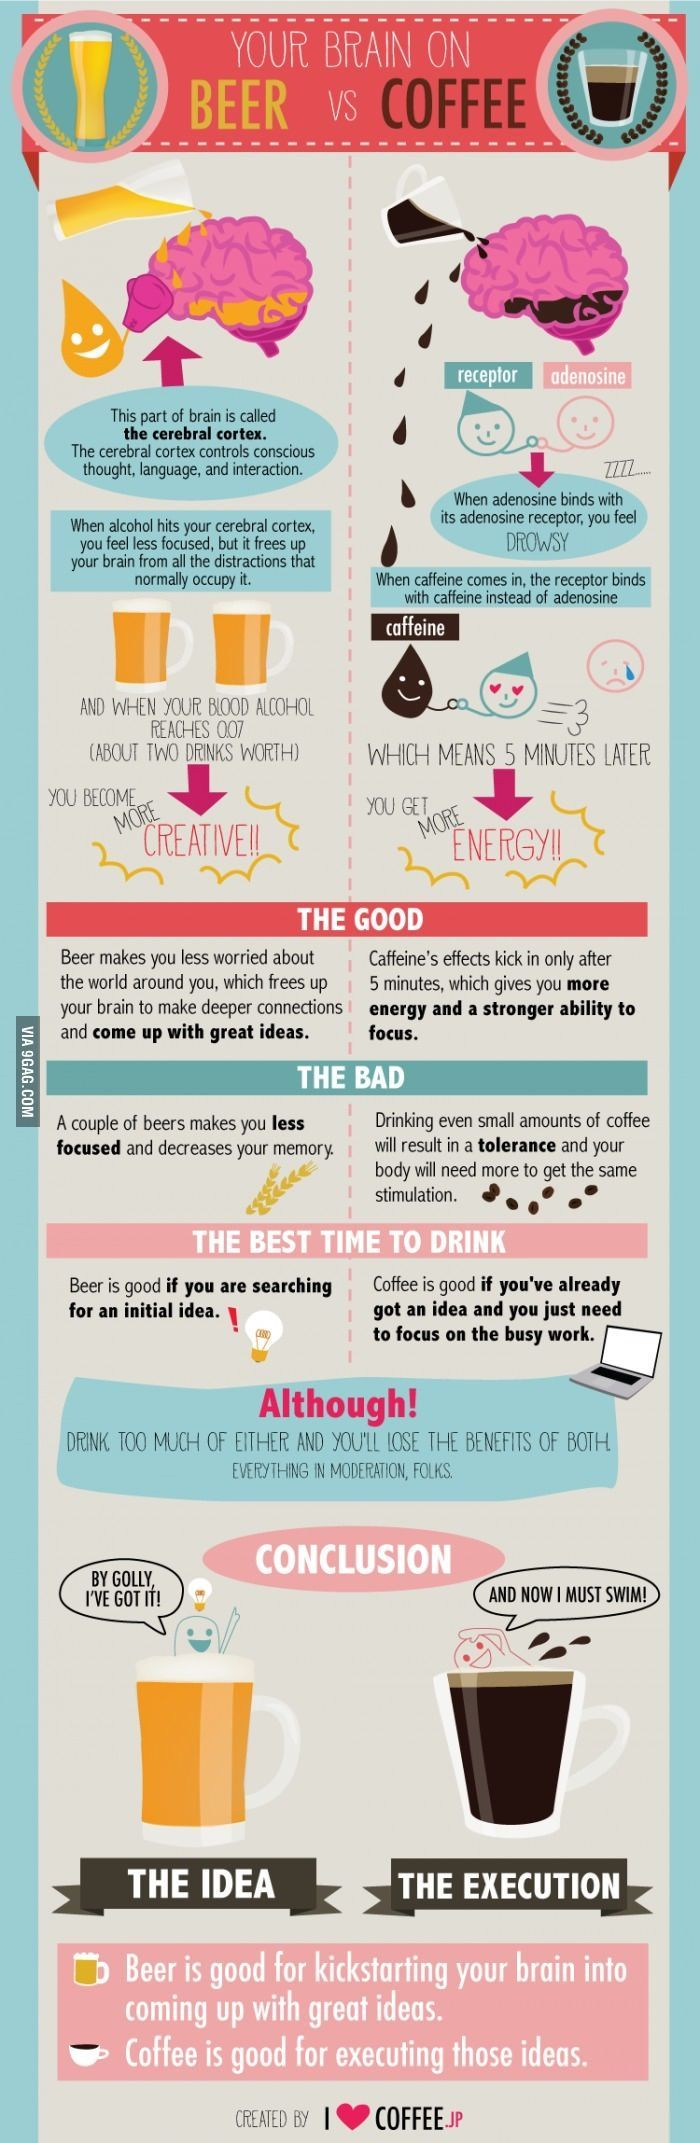 Your brain on beer vs coffee.  [infographic]  http://dailyinfographic.com/wp-content/uploads/2014/03/beer-vs-coffee.jpg